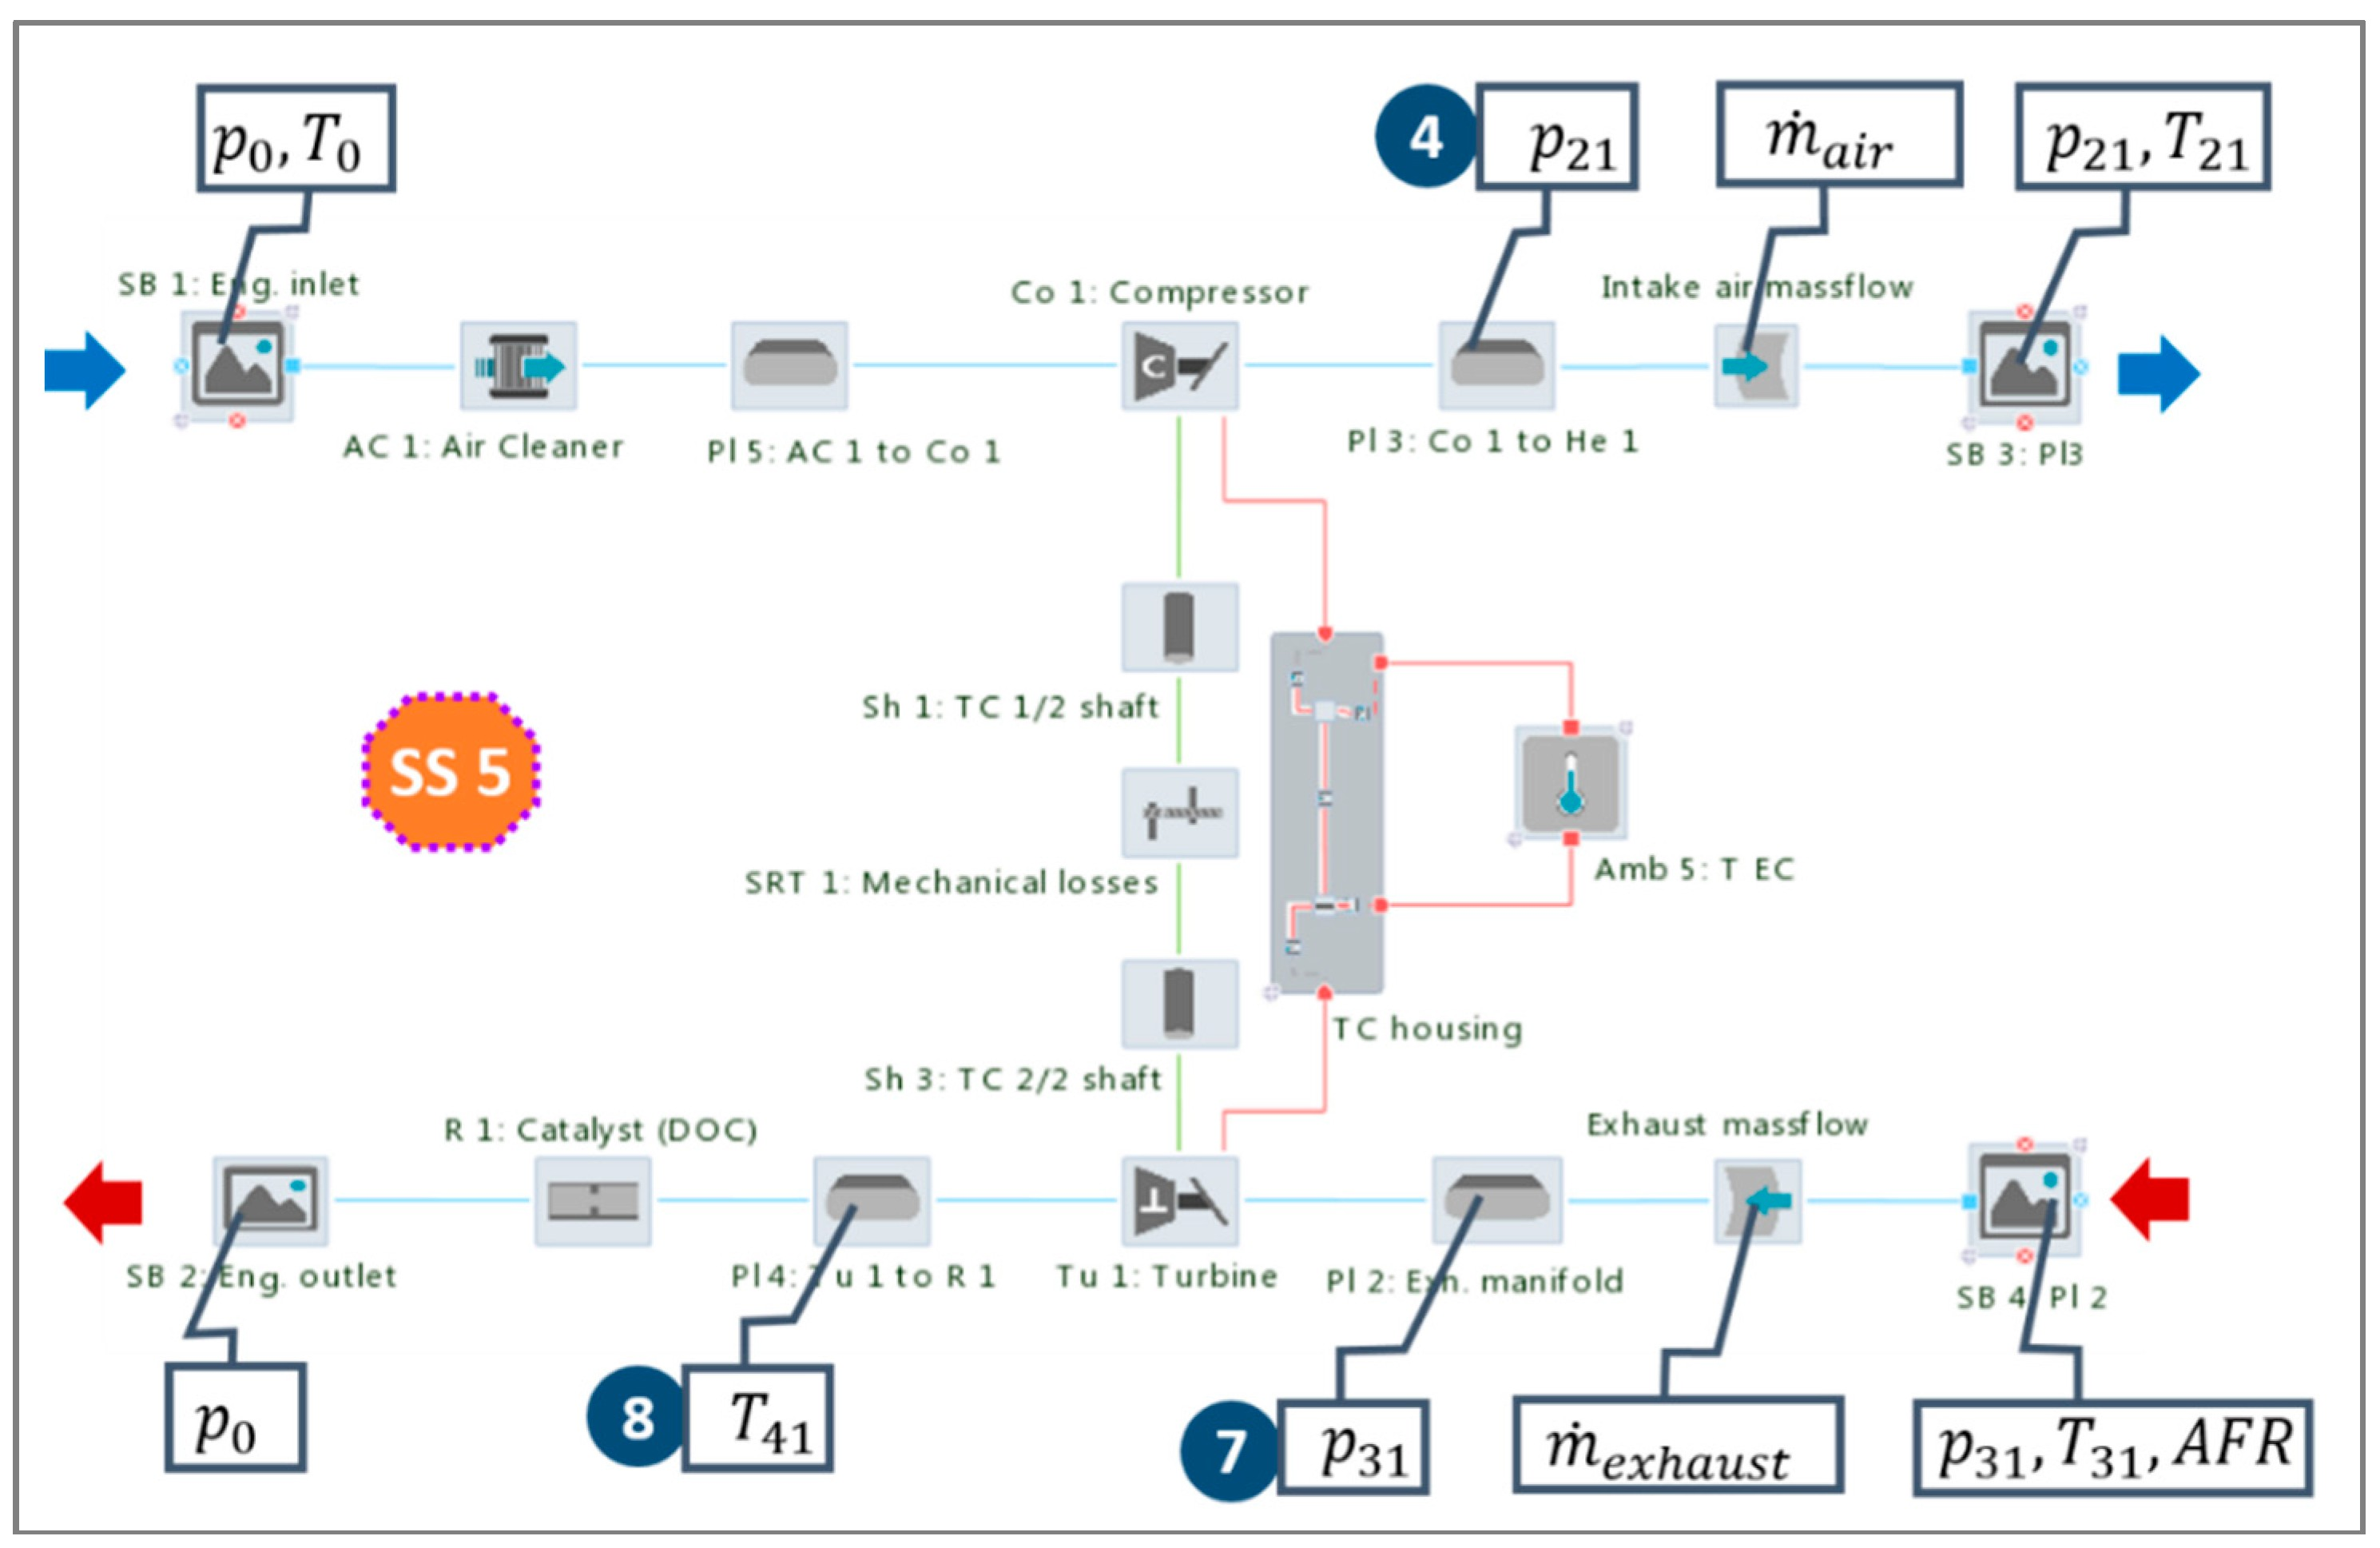 Lubrication System Diagram Energies Free Full Text Of Lubrication System Diagram